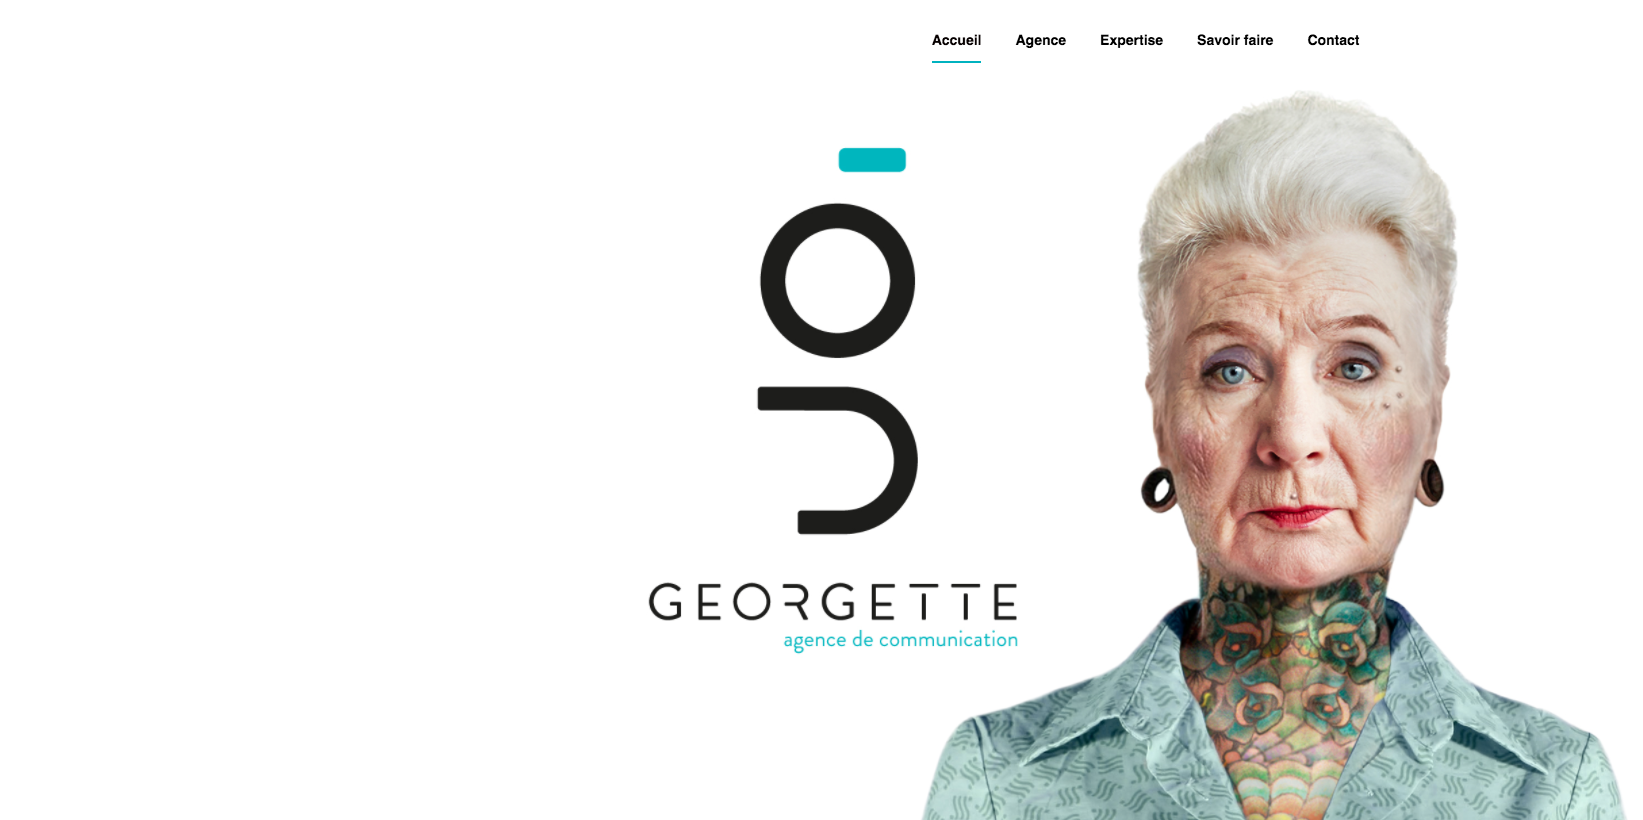 Agence Georgette